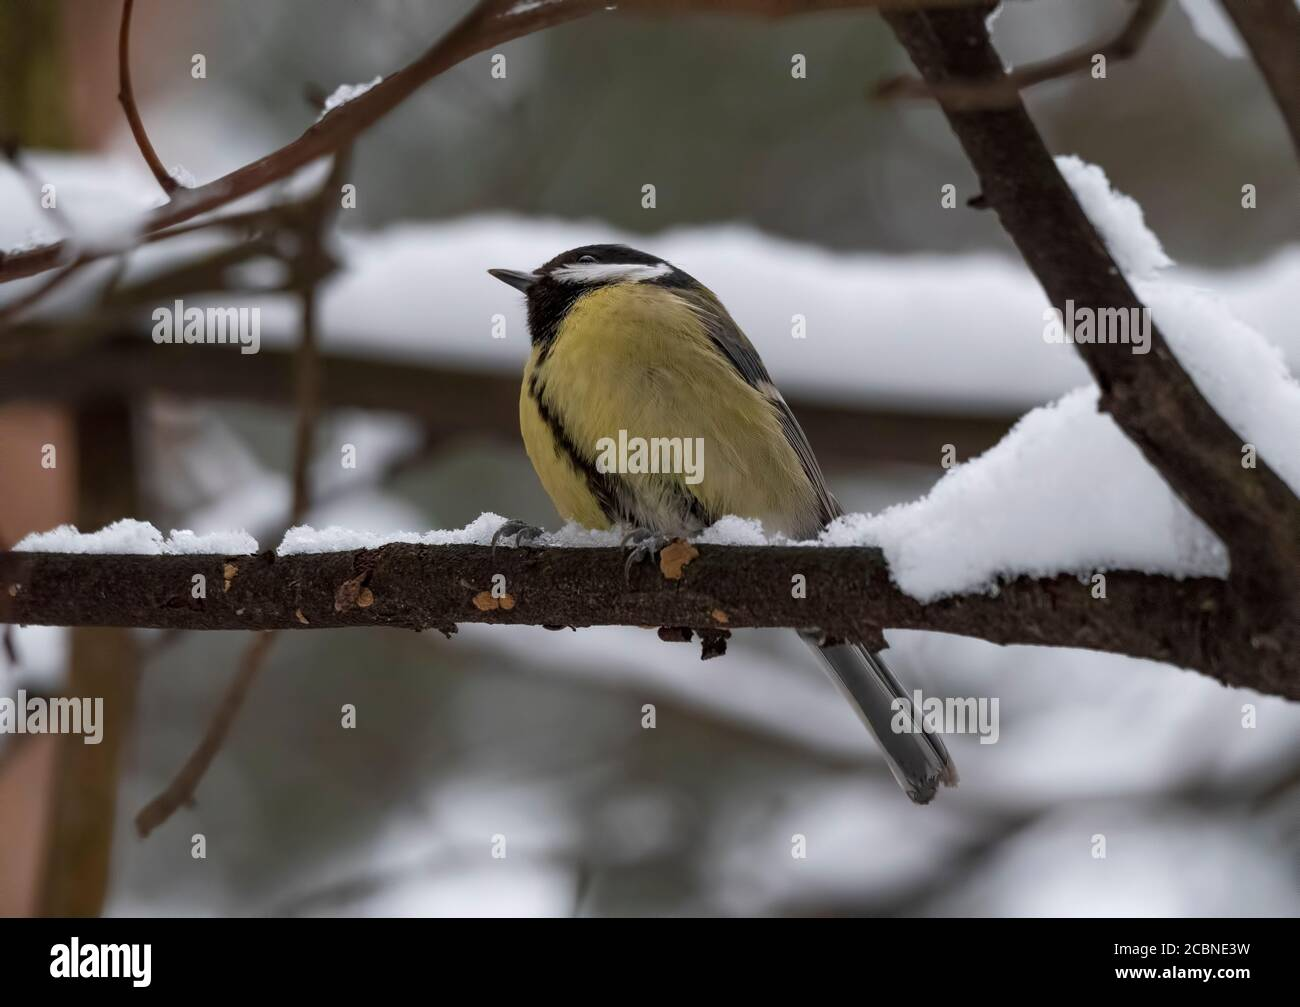 Birds near Moscow, yellow oatmeal on a tree branch. Stock Photo